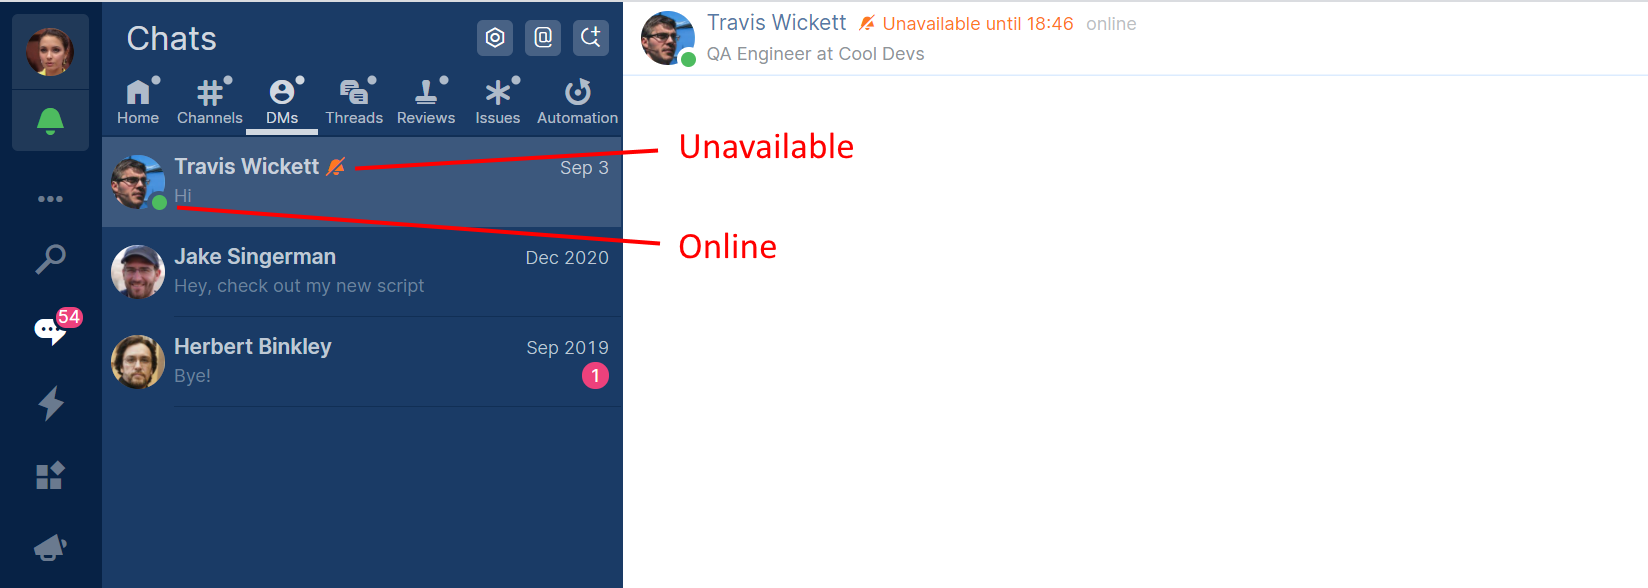 OnlineAndAvailability.png